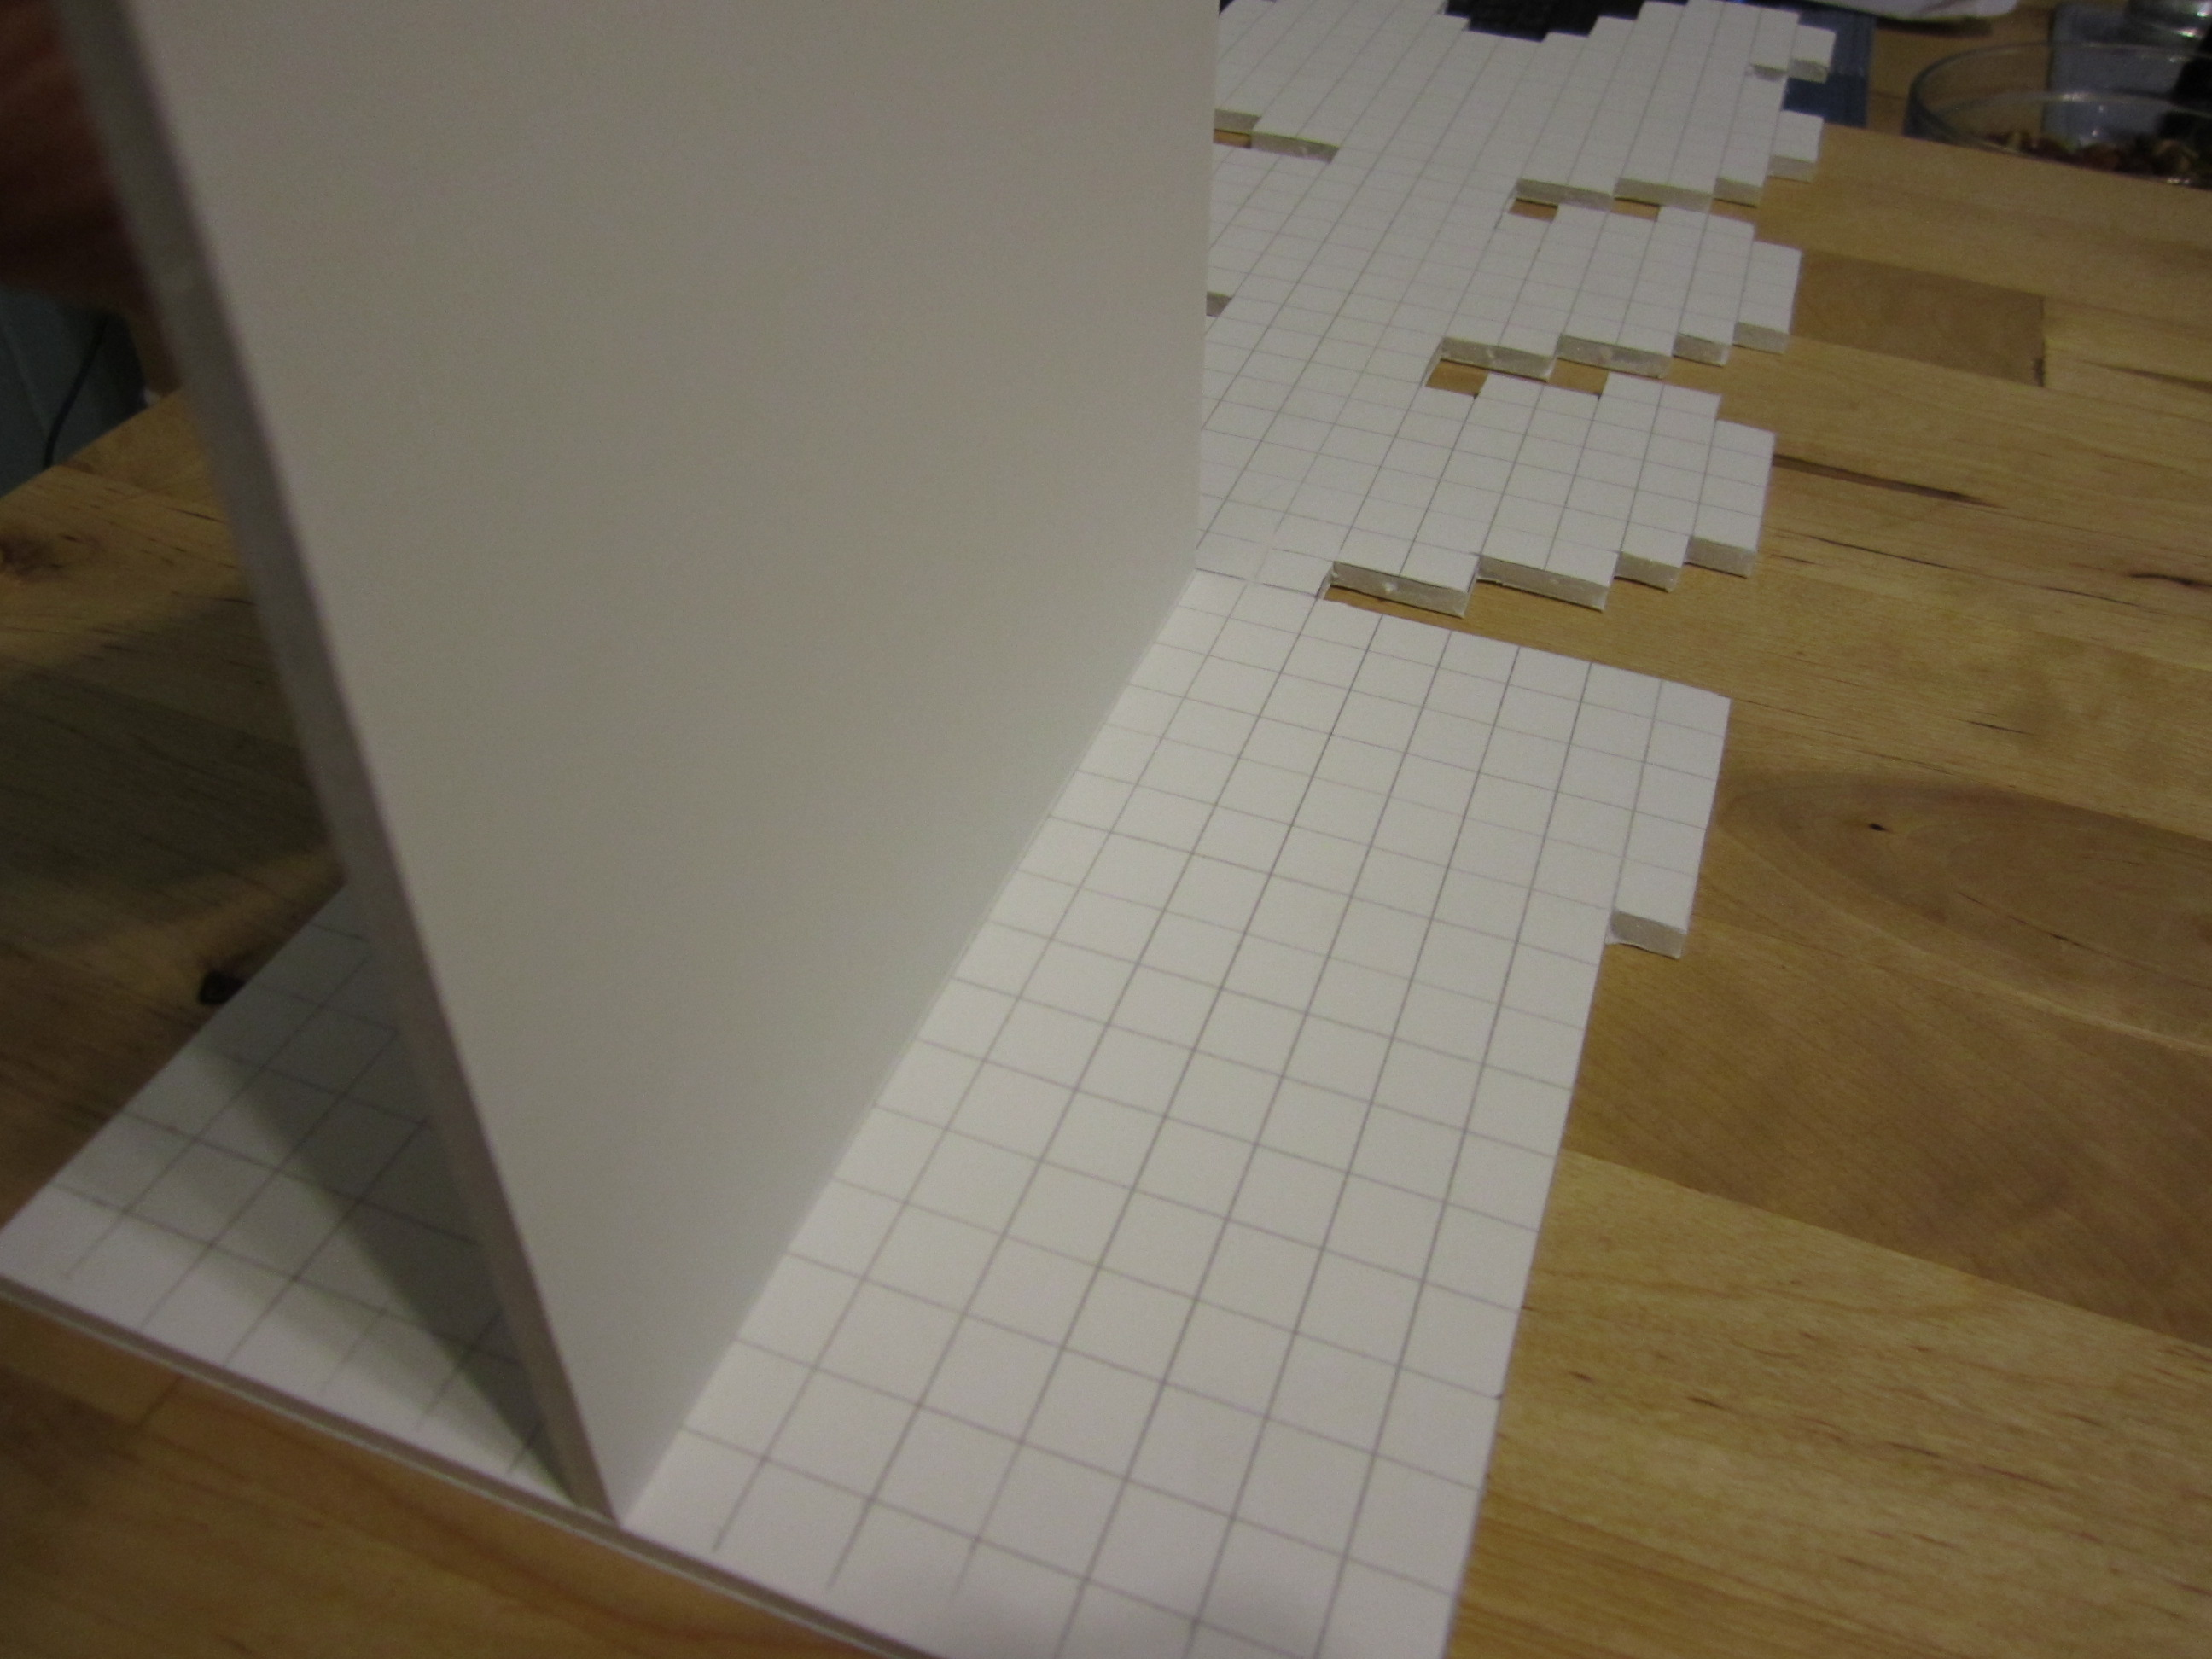 Picture of Cutting Out the Forms